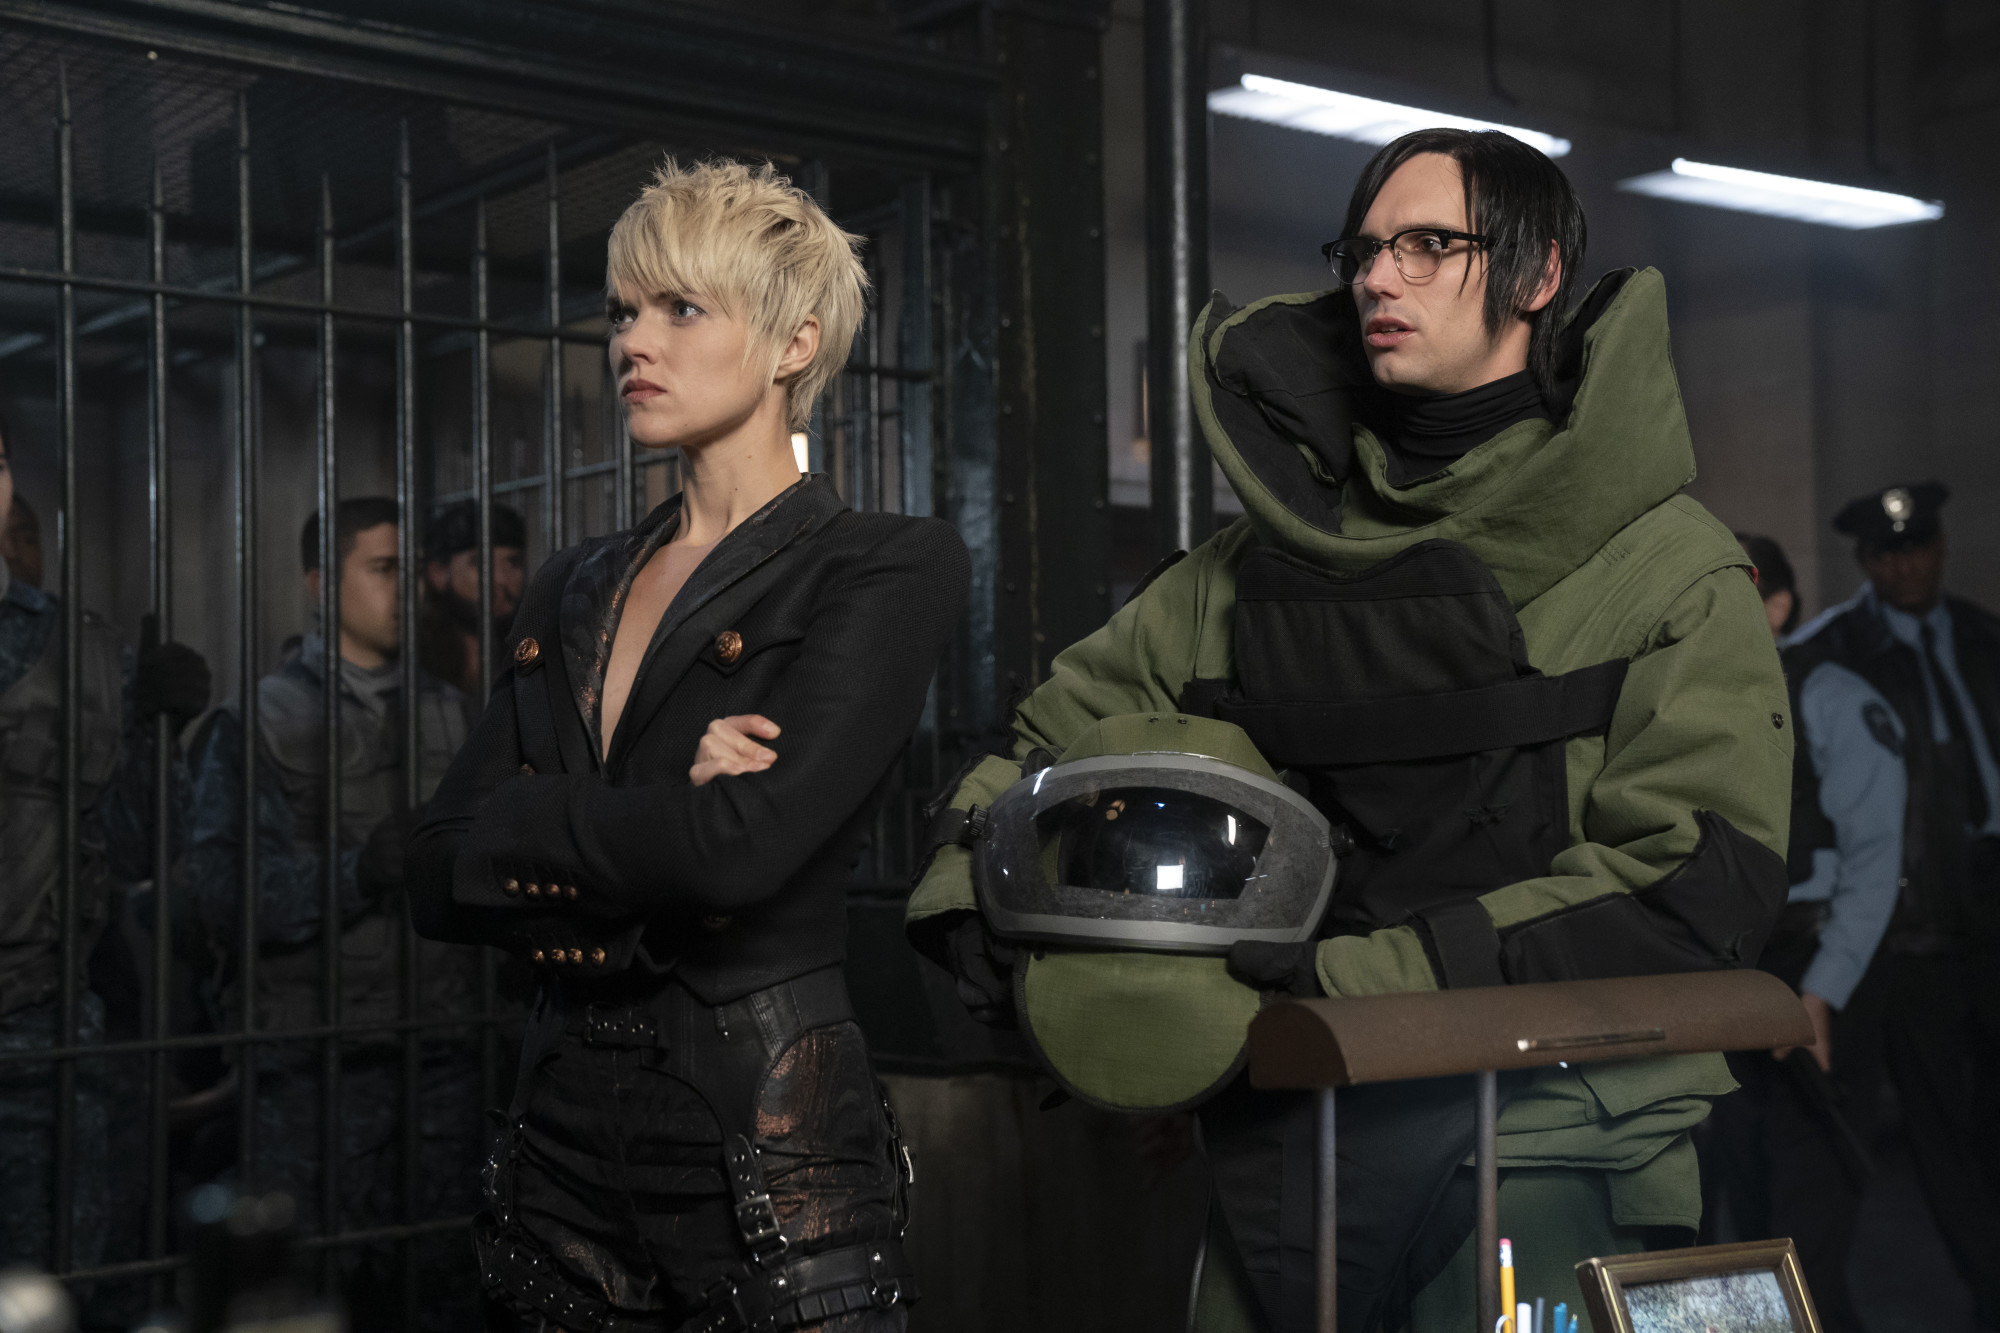 """GOTHAM: L-R: Erin Richards and Cory Michael Smith in the """"13 Stitches"""" episode of GOTHAM airing Thursday, Feb. 14 (8:00-9:00 PM ET/PT) on FOX. ©2019 Fox Broadcasting Co. Cr: FOX"""